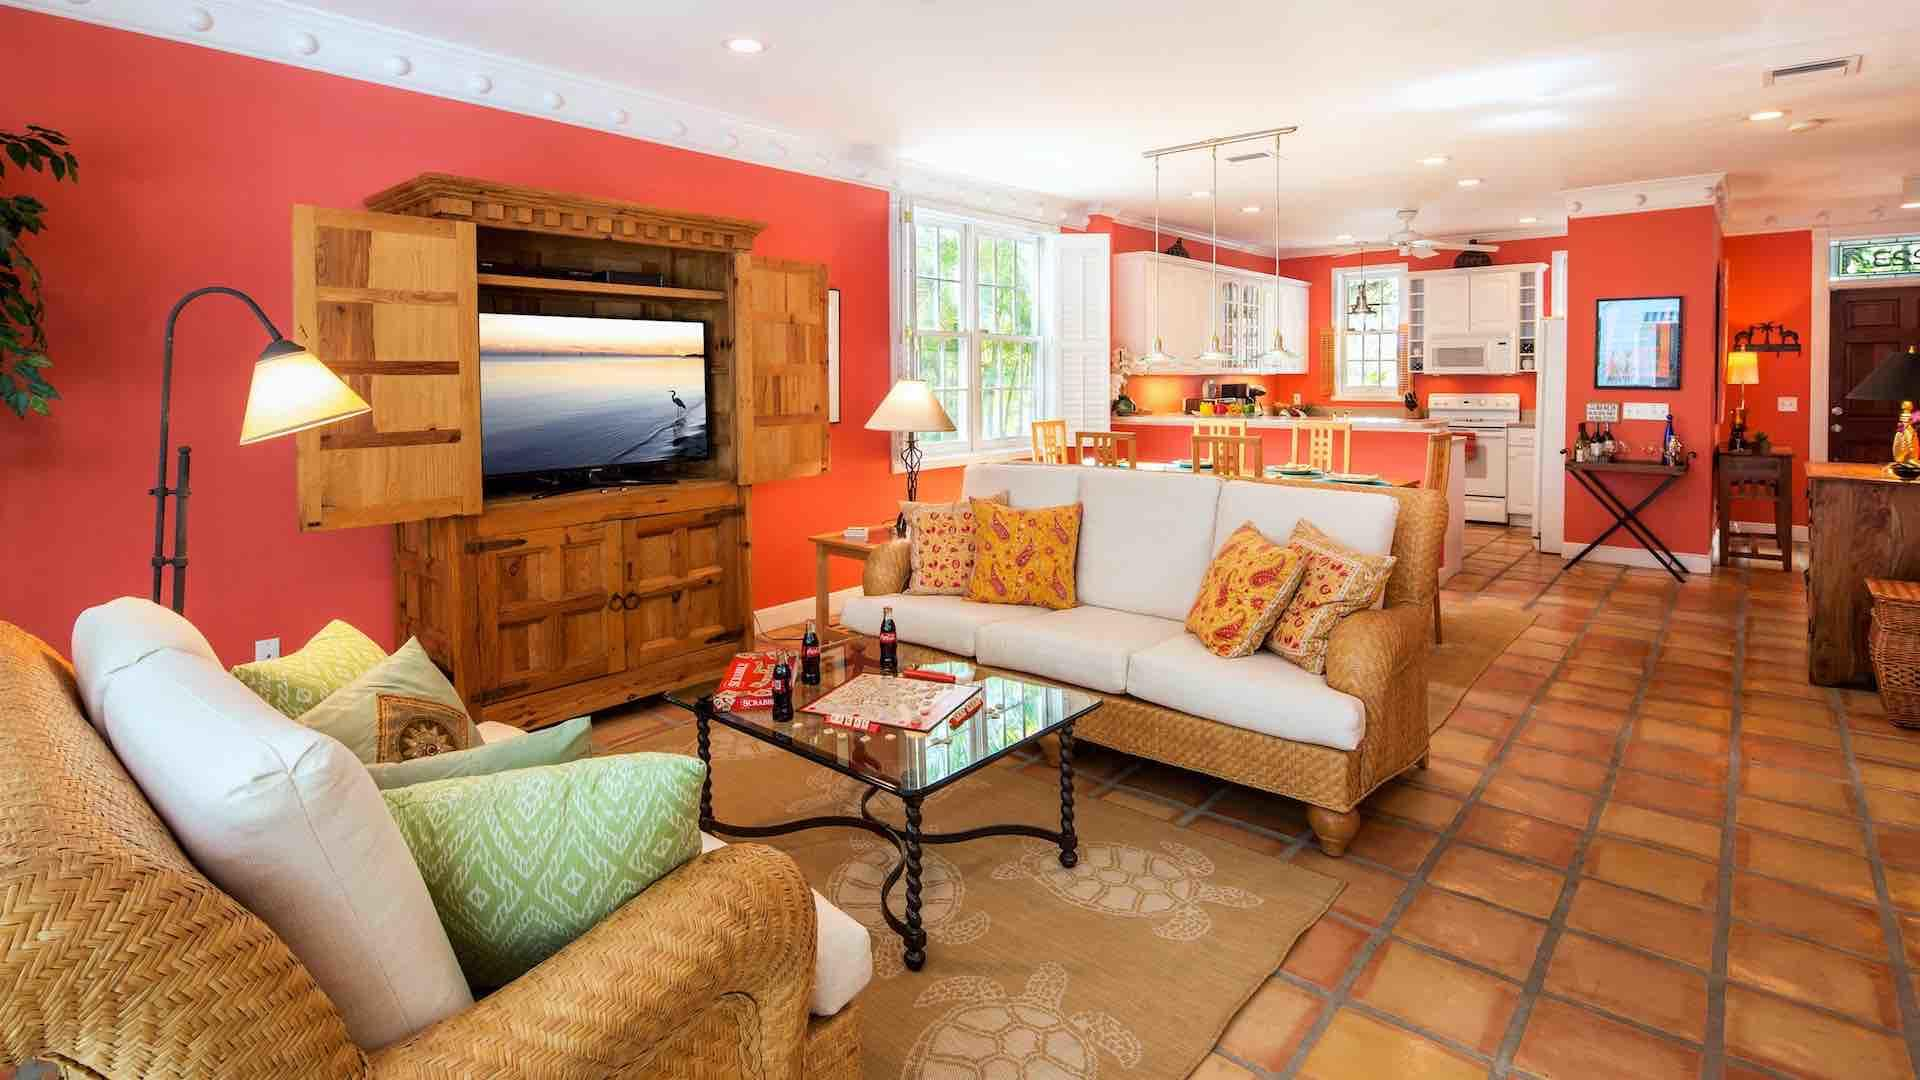 The living room has a large flat screen TV and plenty of comfortable beachy seating...